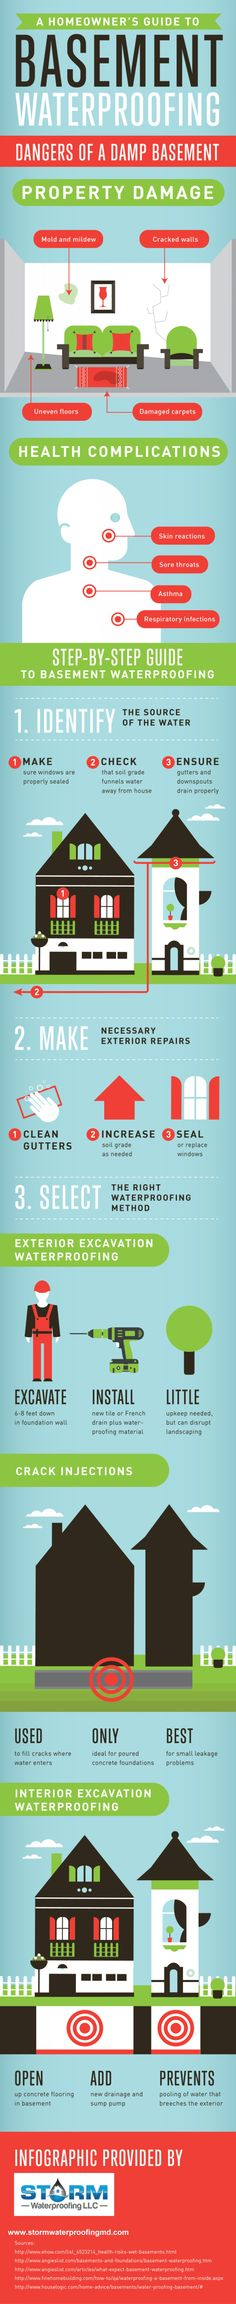 A Homeowner's Guide to Basement Waterproofing Infographic